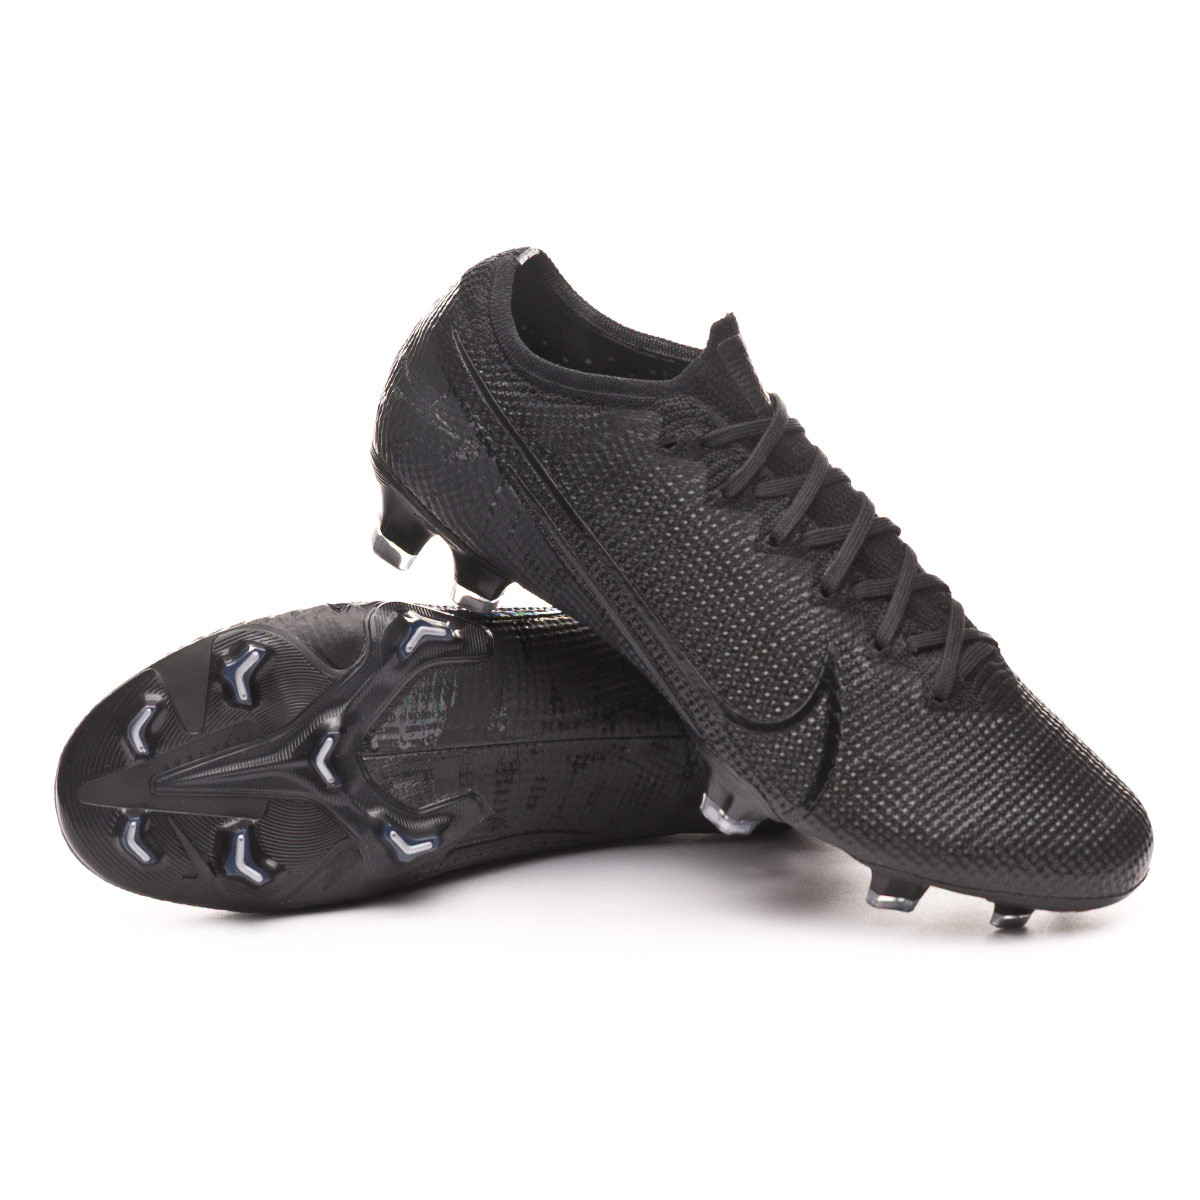 many styles cheap for sale best price Nike Mercurial Vapor XIII Elite FG Football Boots